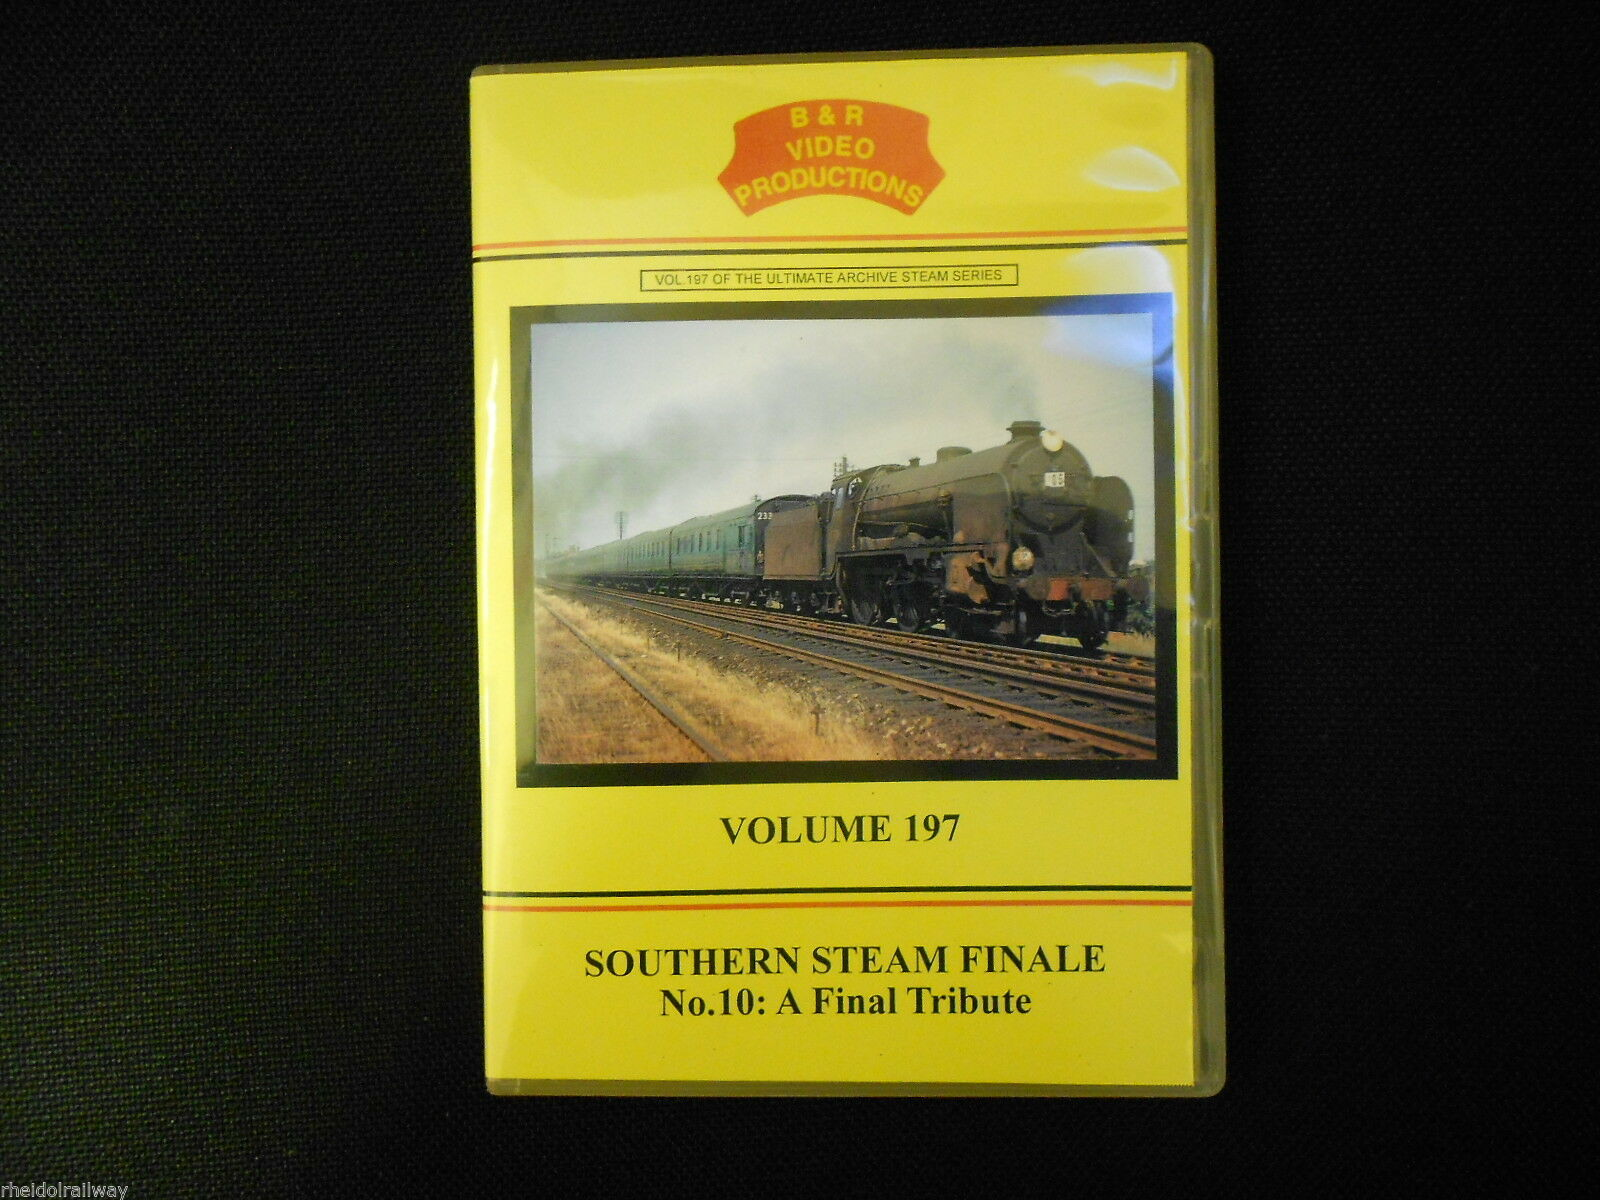 Waterloo, Wight, Southern Steam Finale No.10 A Final Tribute B&R Vol 197 DVD